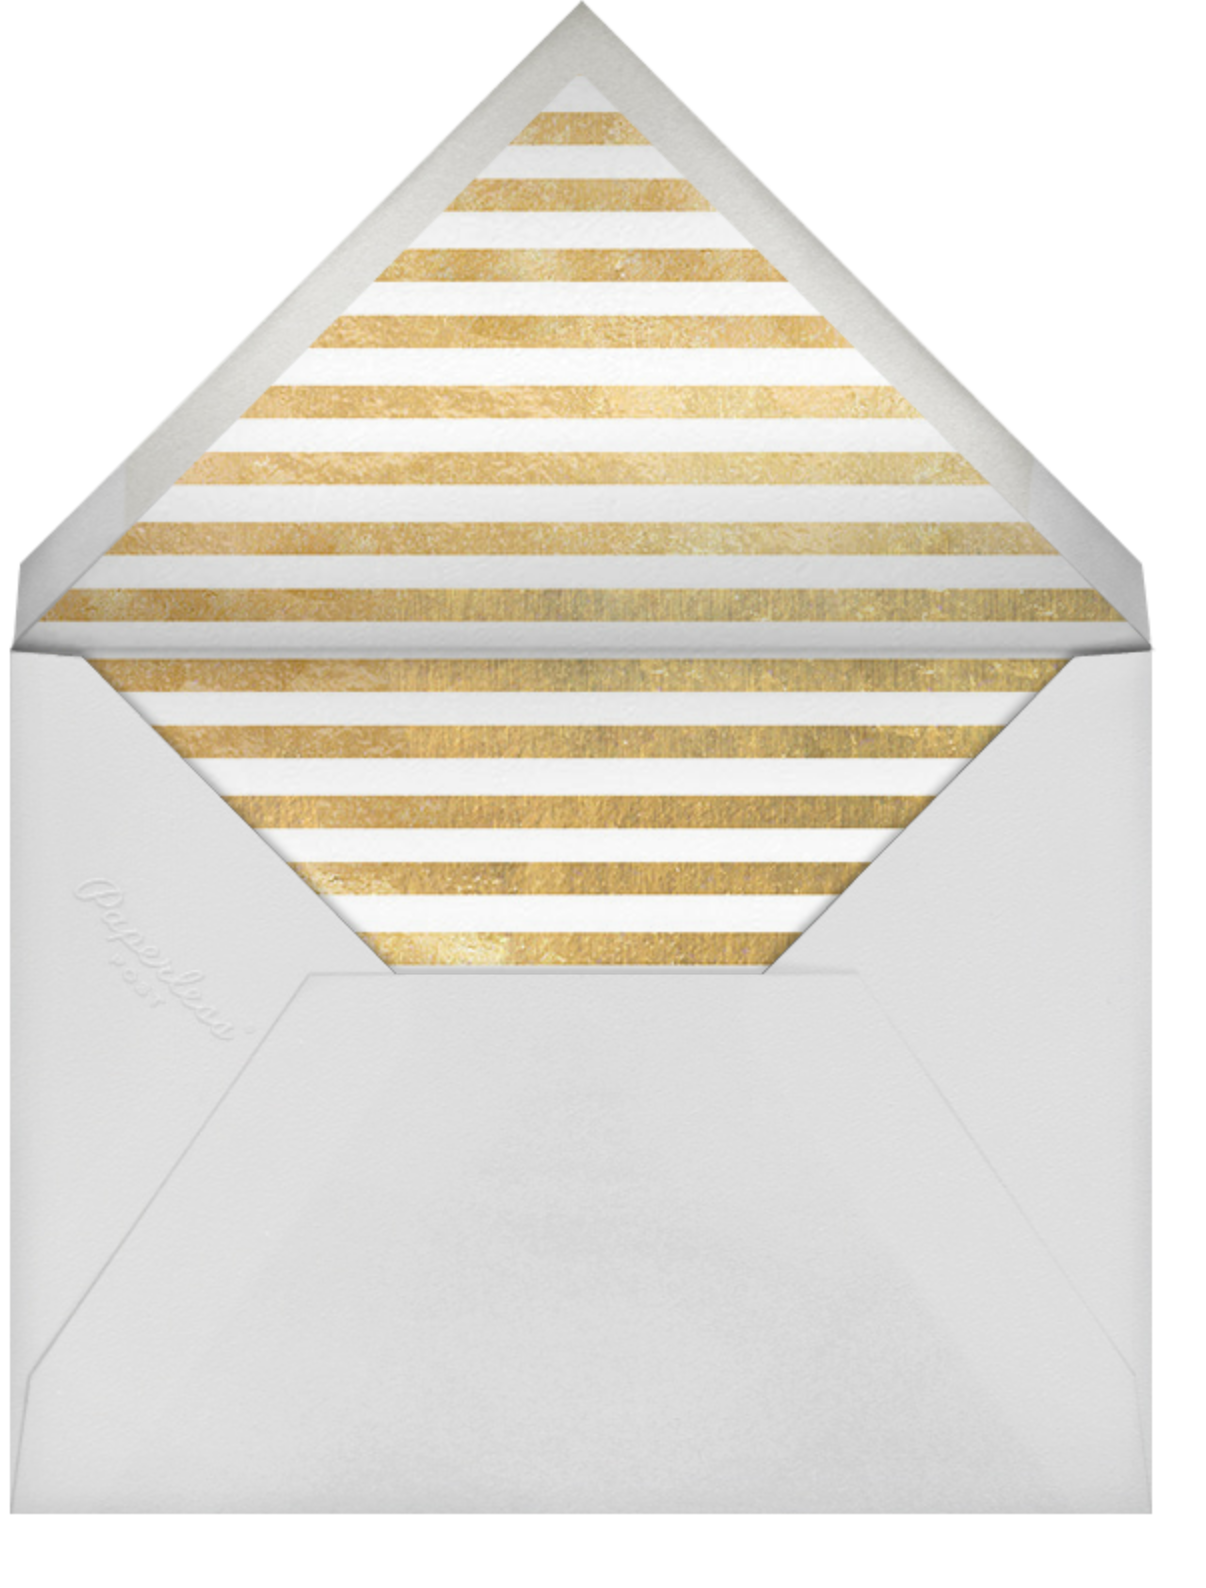 Confetti Tall (Double-Sided Photo) - Gold - kate spade new york - Holiday cards - envelope back